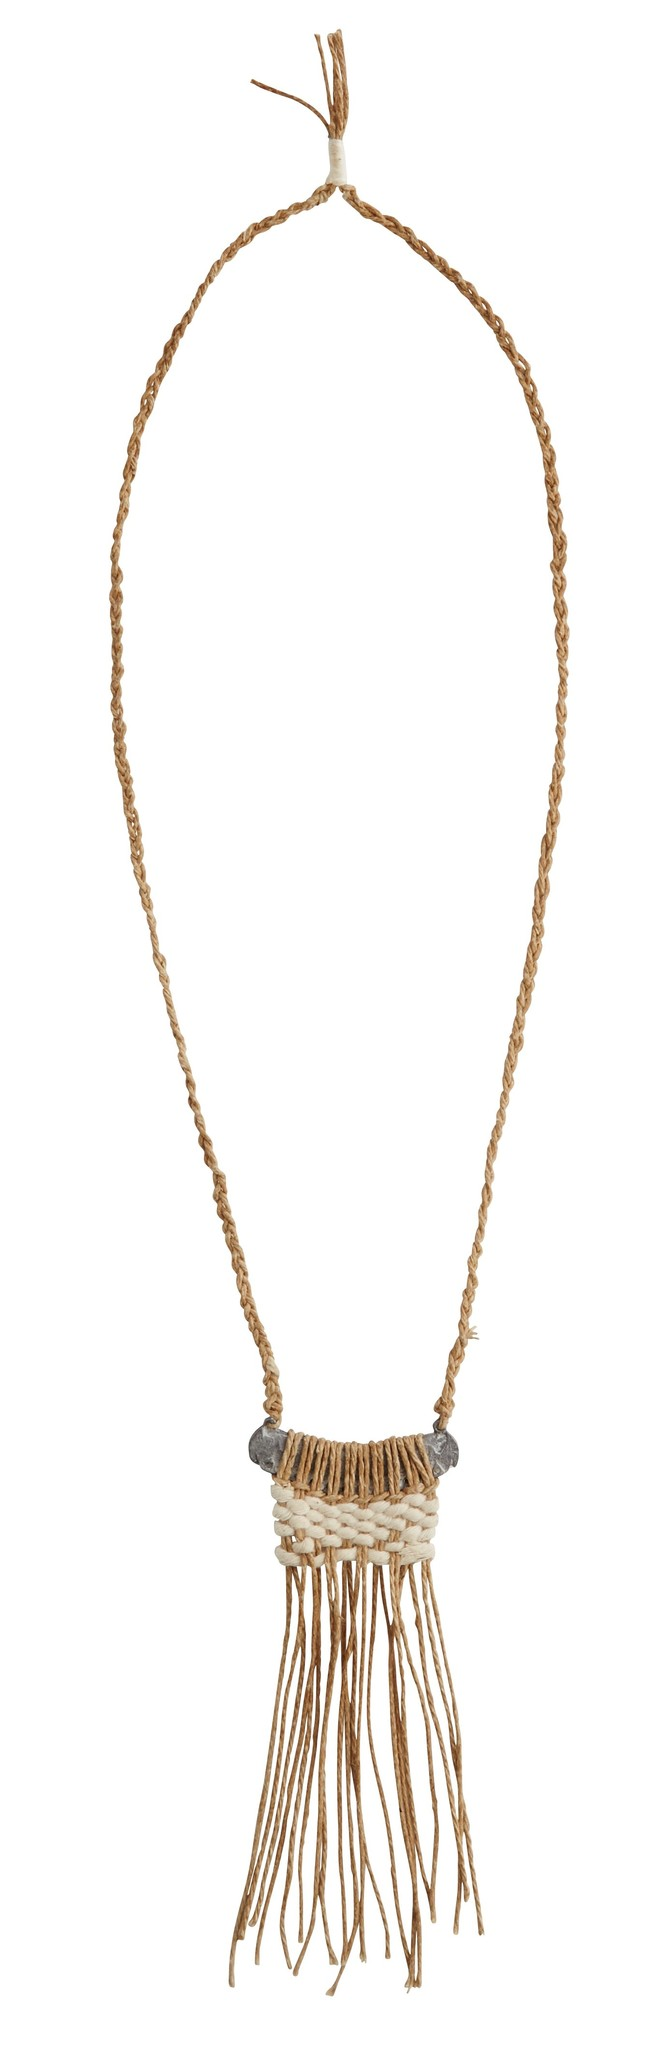 Ketting with fringles 44cm Natural-1